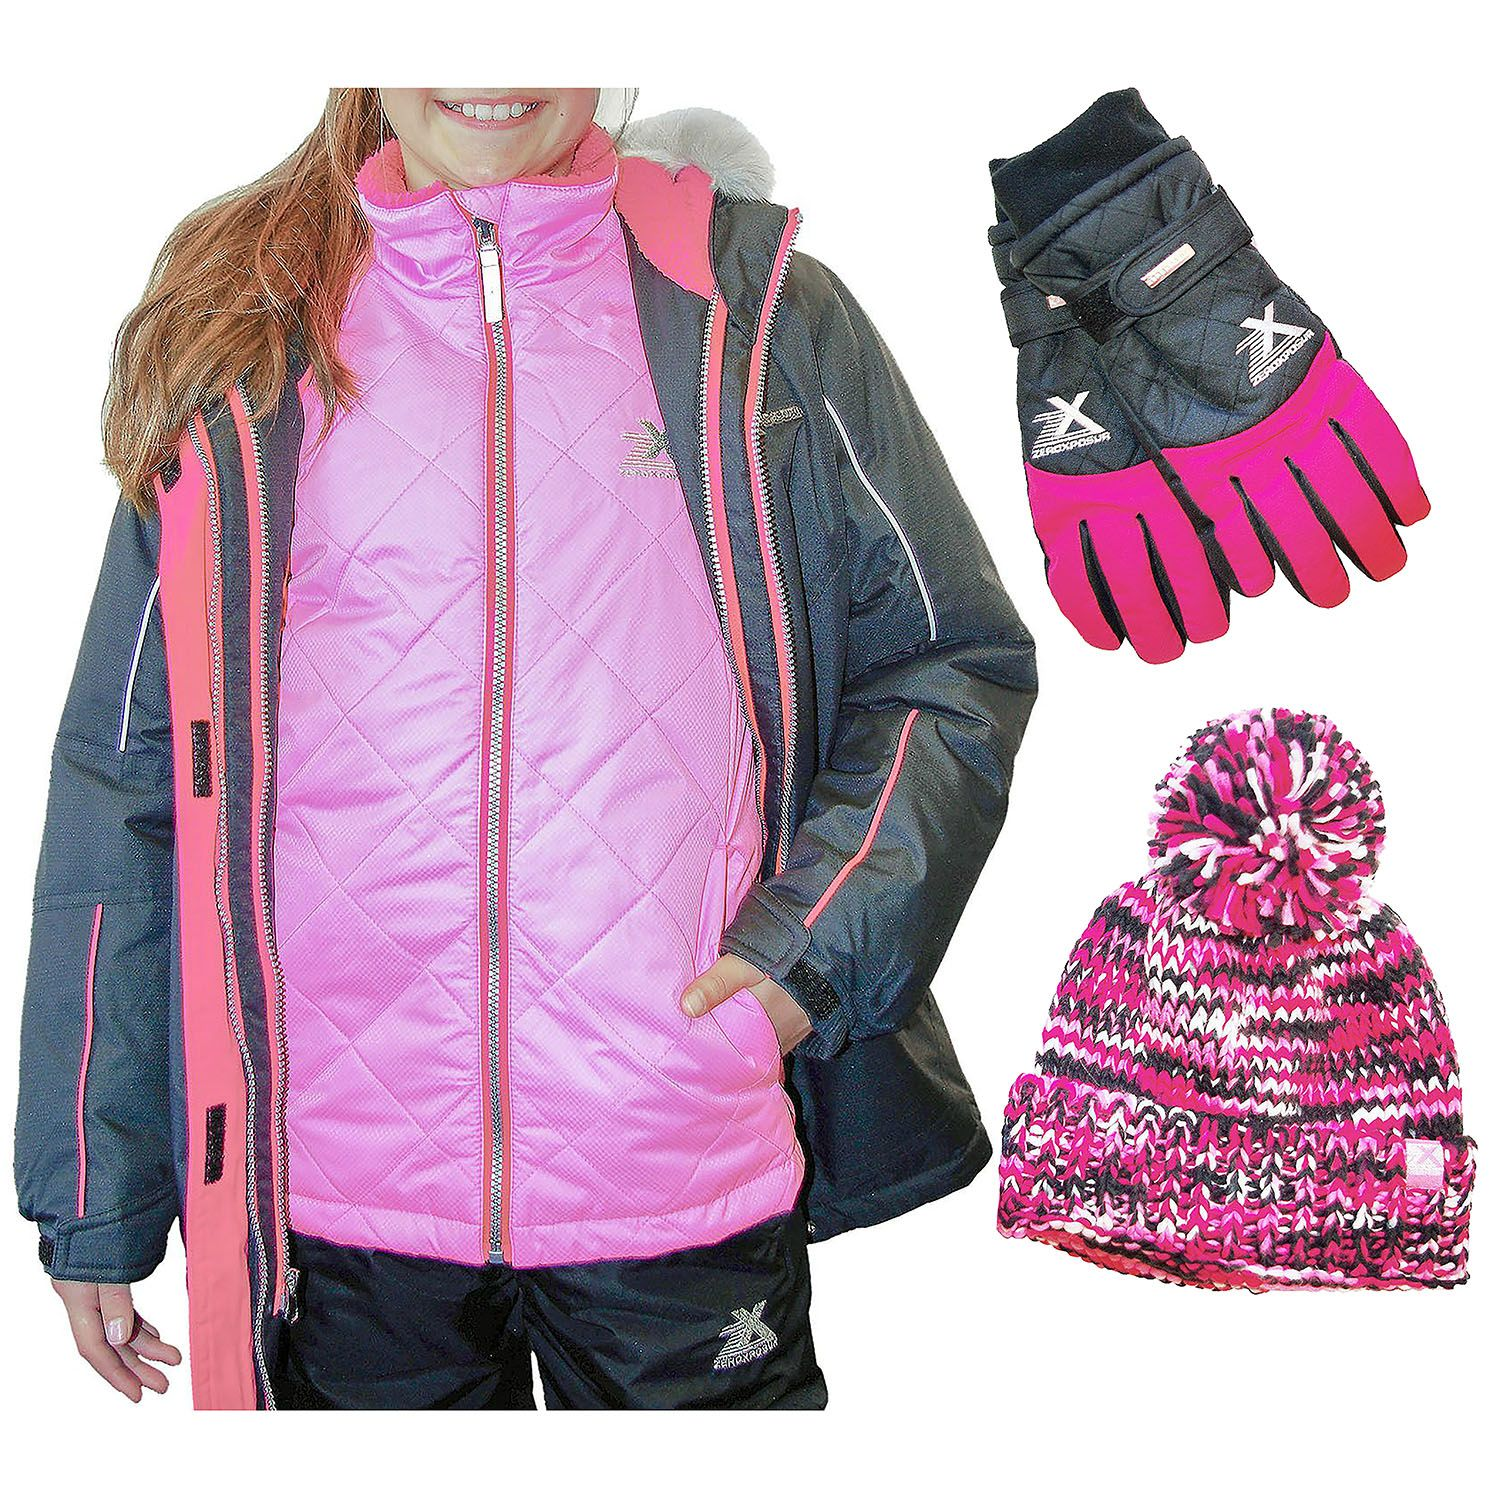 ca77d4042 ZeroXposur System Jacket, Hat, and Glove Set - Boy or Girl - Sam's Club